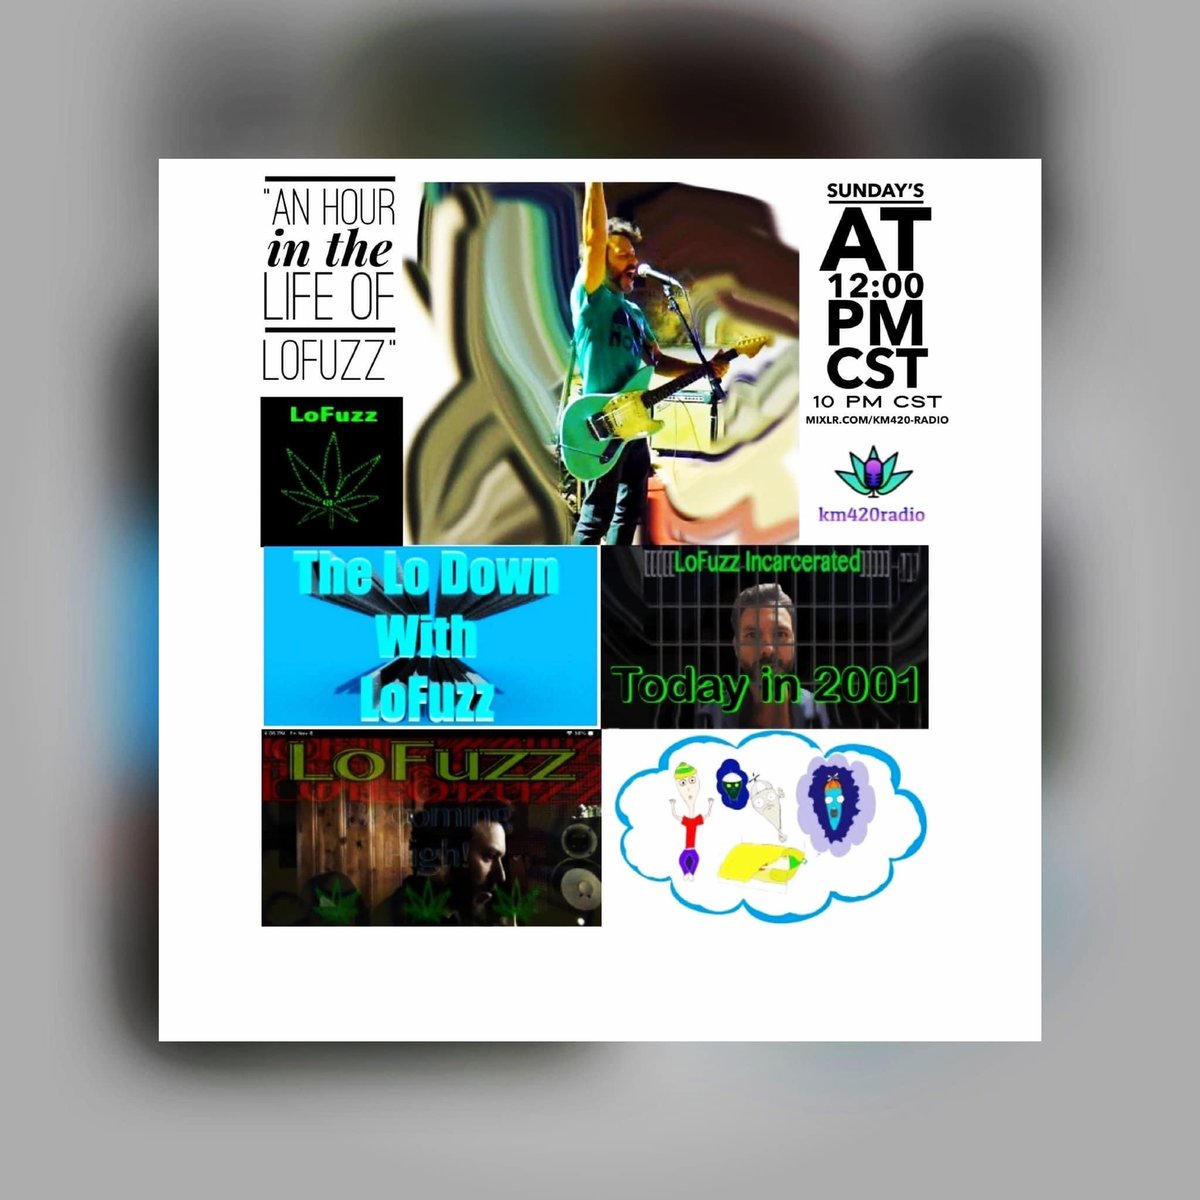 🔥🔥🔥🎶 NOW 🎶🔥🔥🔥  KM420 RADIO presents: An Hour in the Life of Lo Fuzz Playing today at 12:00 PM CST 🔥🎶💗  💚 Lo Fuzz bad ass music  💚 becoming high with LoFuzz  💚 the Lo Down with LoFuzz  💚 LoFuzz incarcerated  #sanantonio #indieartist #bluesrockandroll #lofuzzmusic